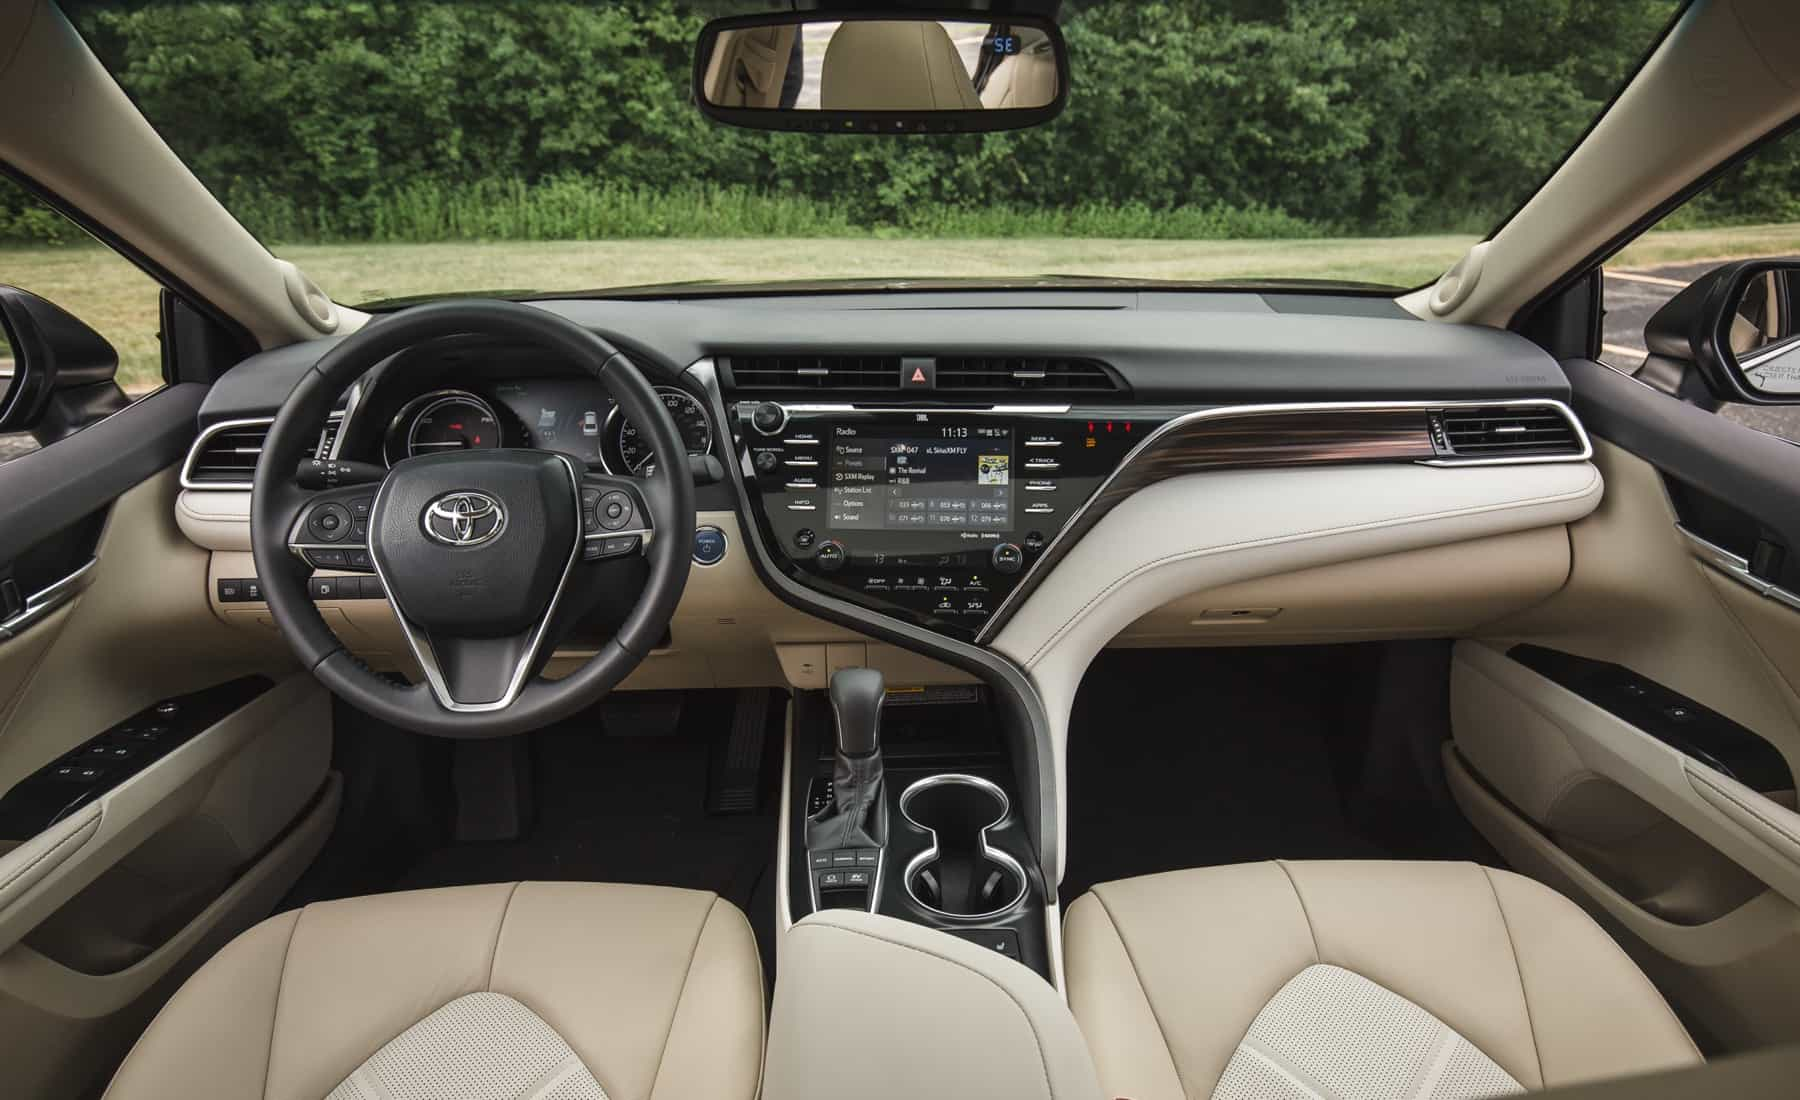 2018 Toyota Camry Hybrid XLE Interior Dashboard (Photo 23 of 41)